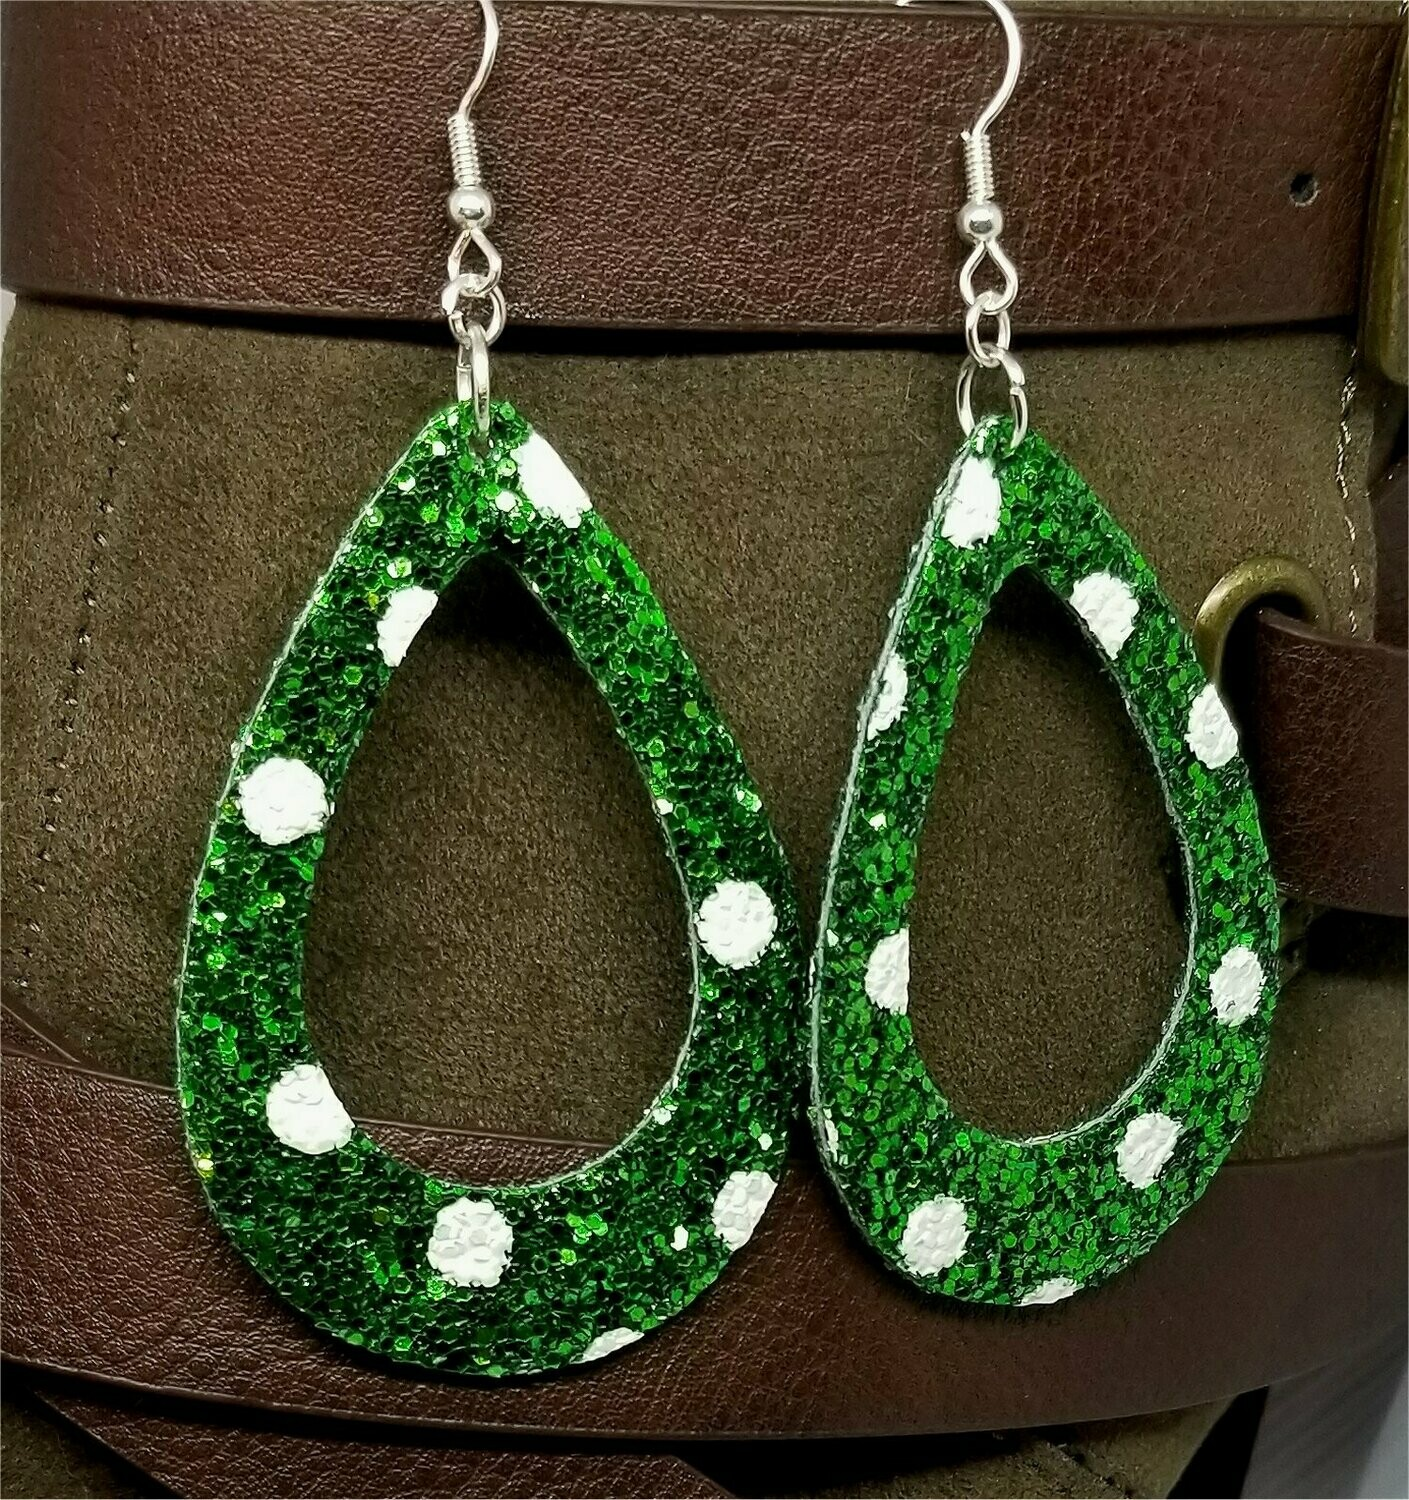 Chunky Green Glitter Very Sparkly Double Sided FAUX Leather Cut Out Teardrop Earrings with White Polka Dots